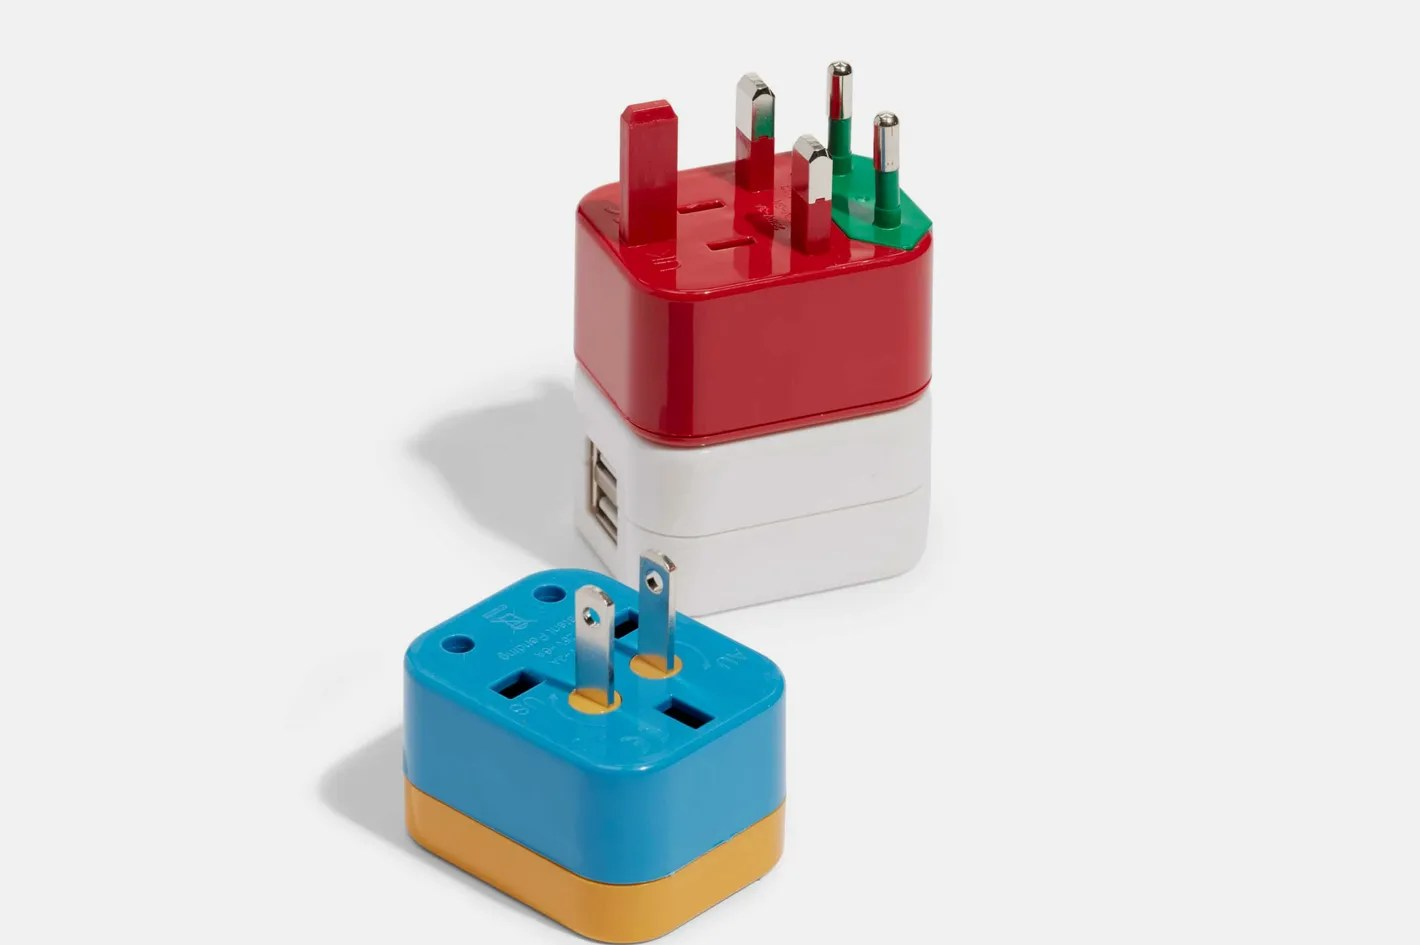 Coles Travel Adaptor The 5 Best Travel Adapters For Every Type Of Trip 2018